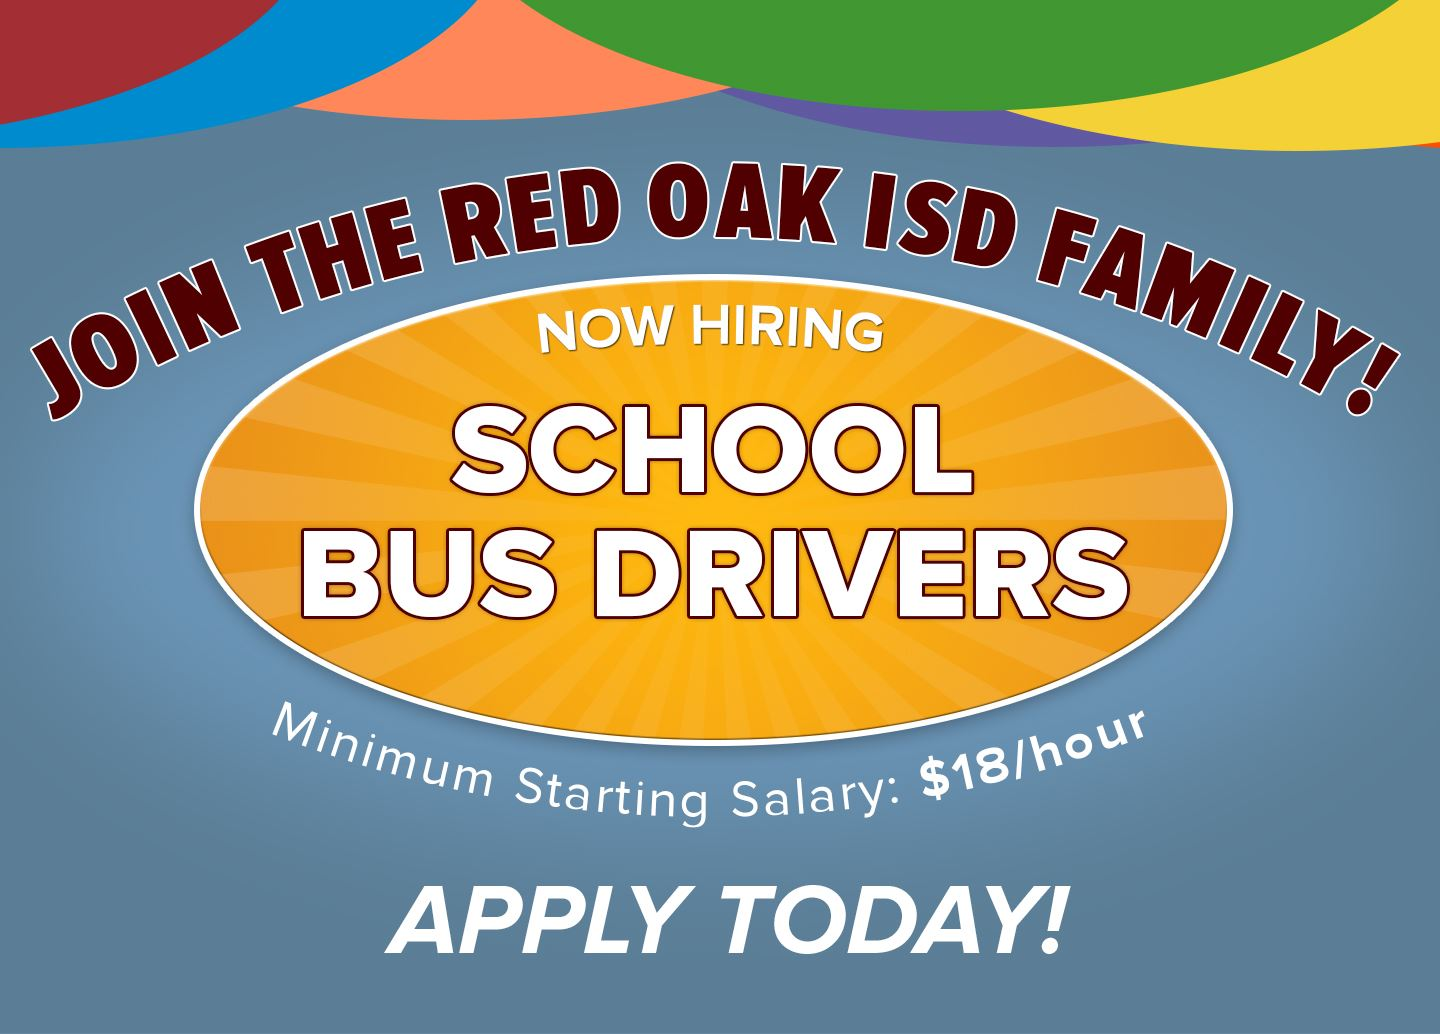 Join the ROISD Family! Now hiring bus drivers at minimum starting salary of $18 per hour.